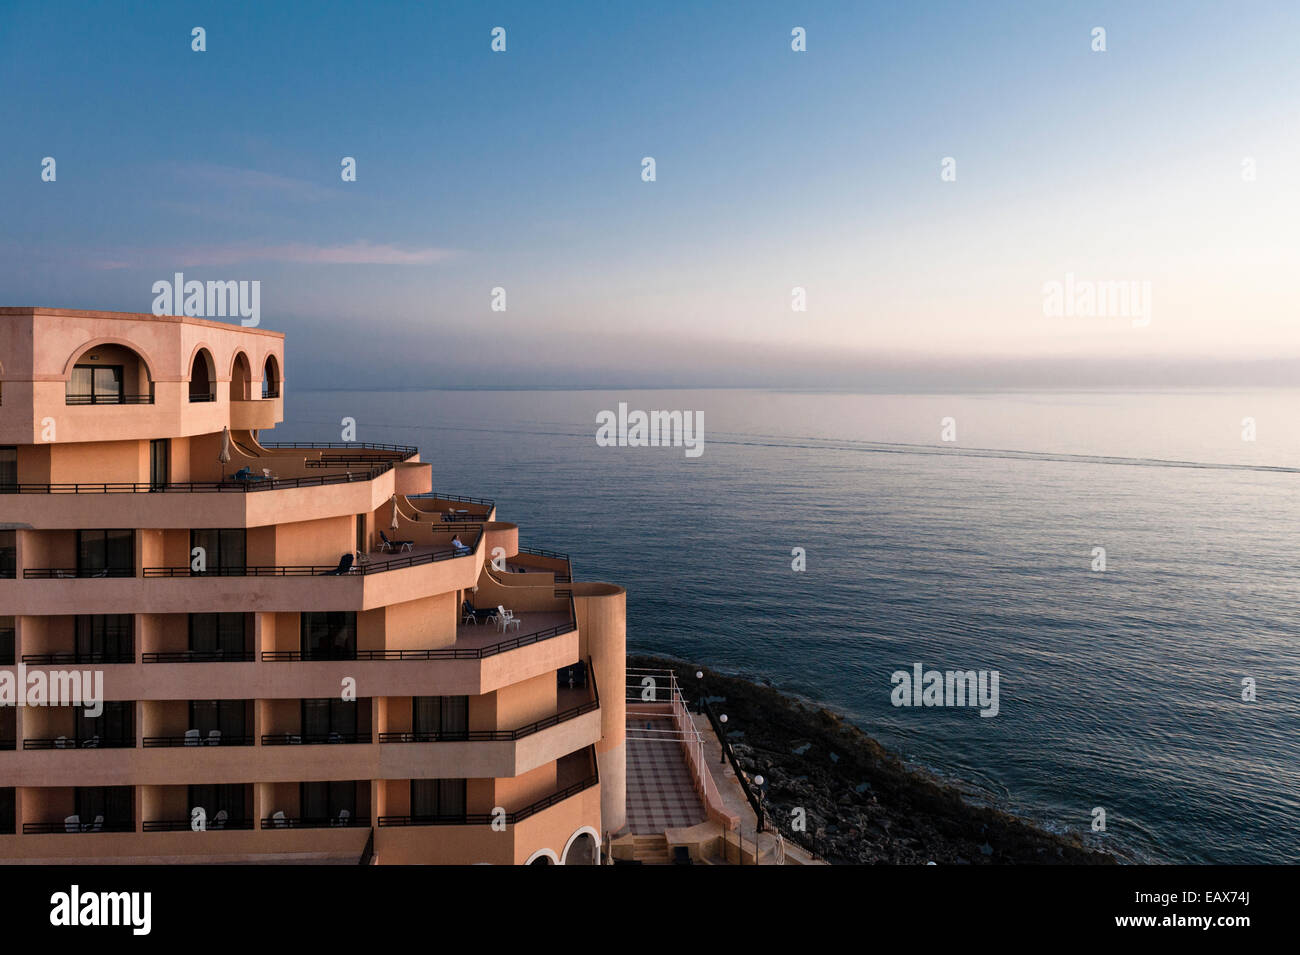 Radisson Blu Hotel, St Julian's, Malta. At dawn, a solitary woman guest watches the sunrise over the Mediterranean - Stock Image